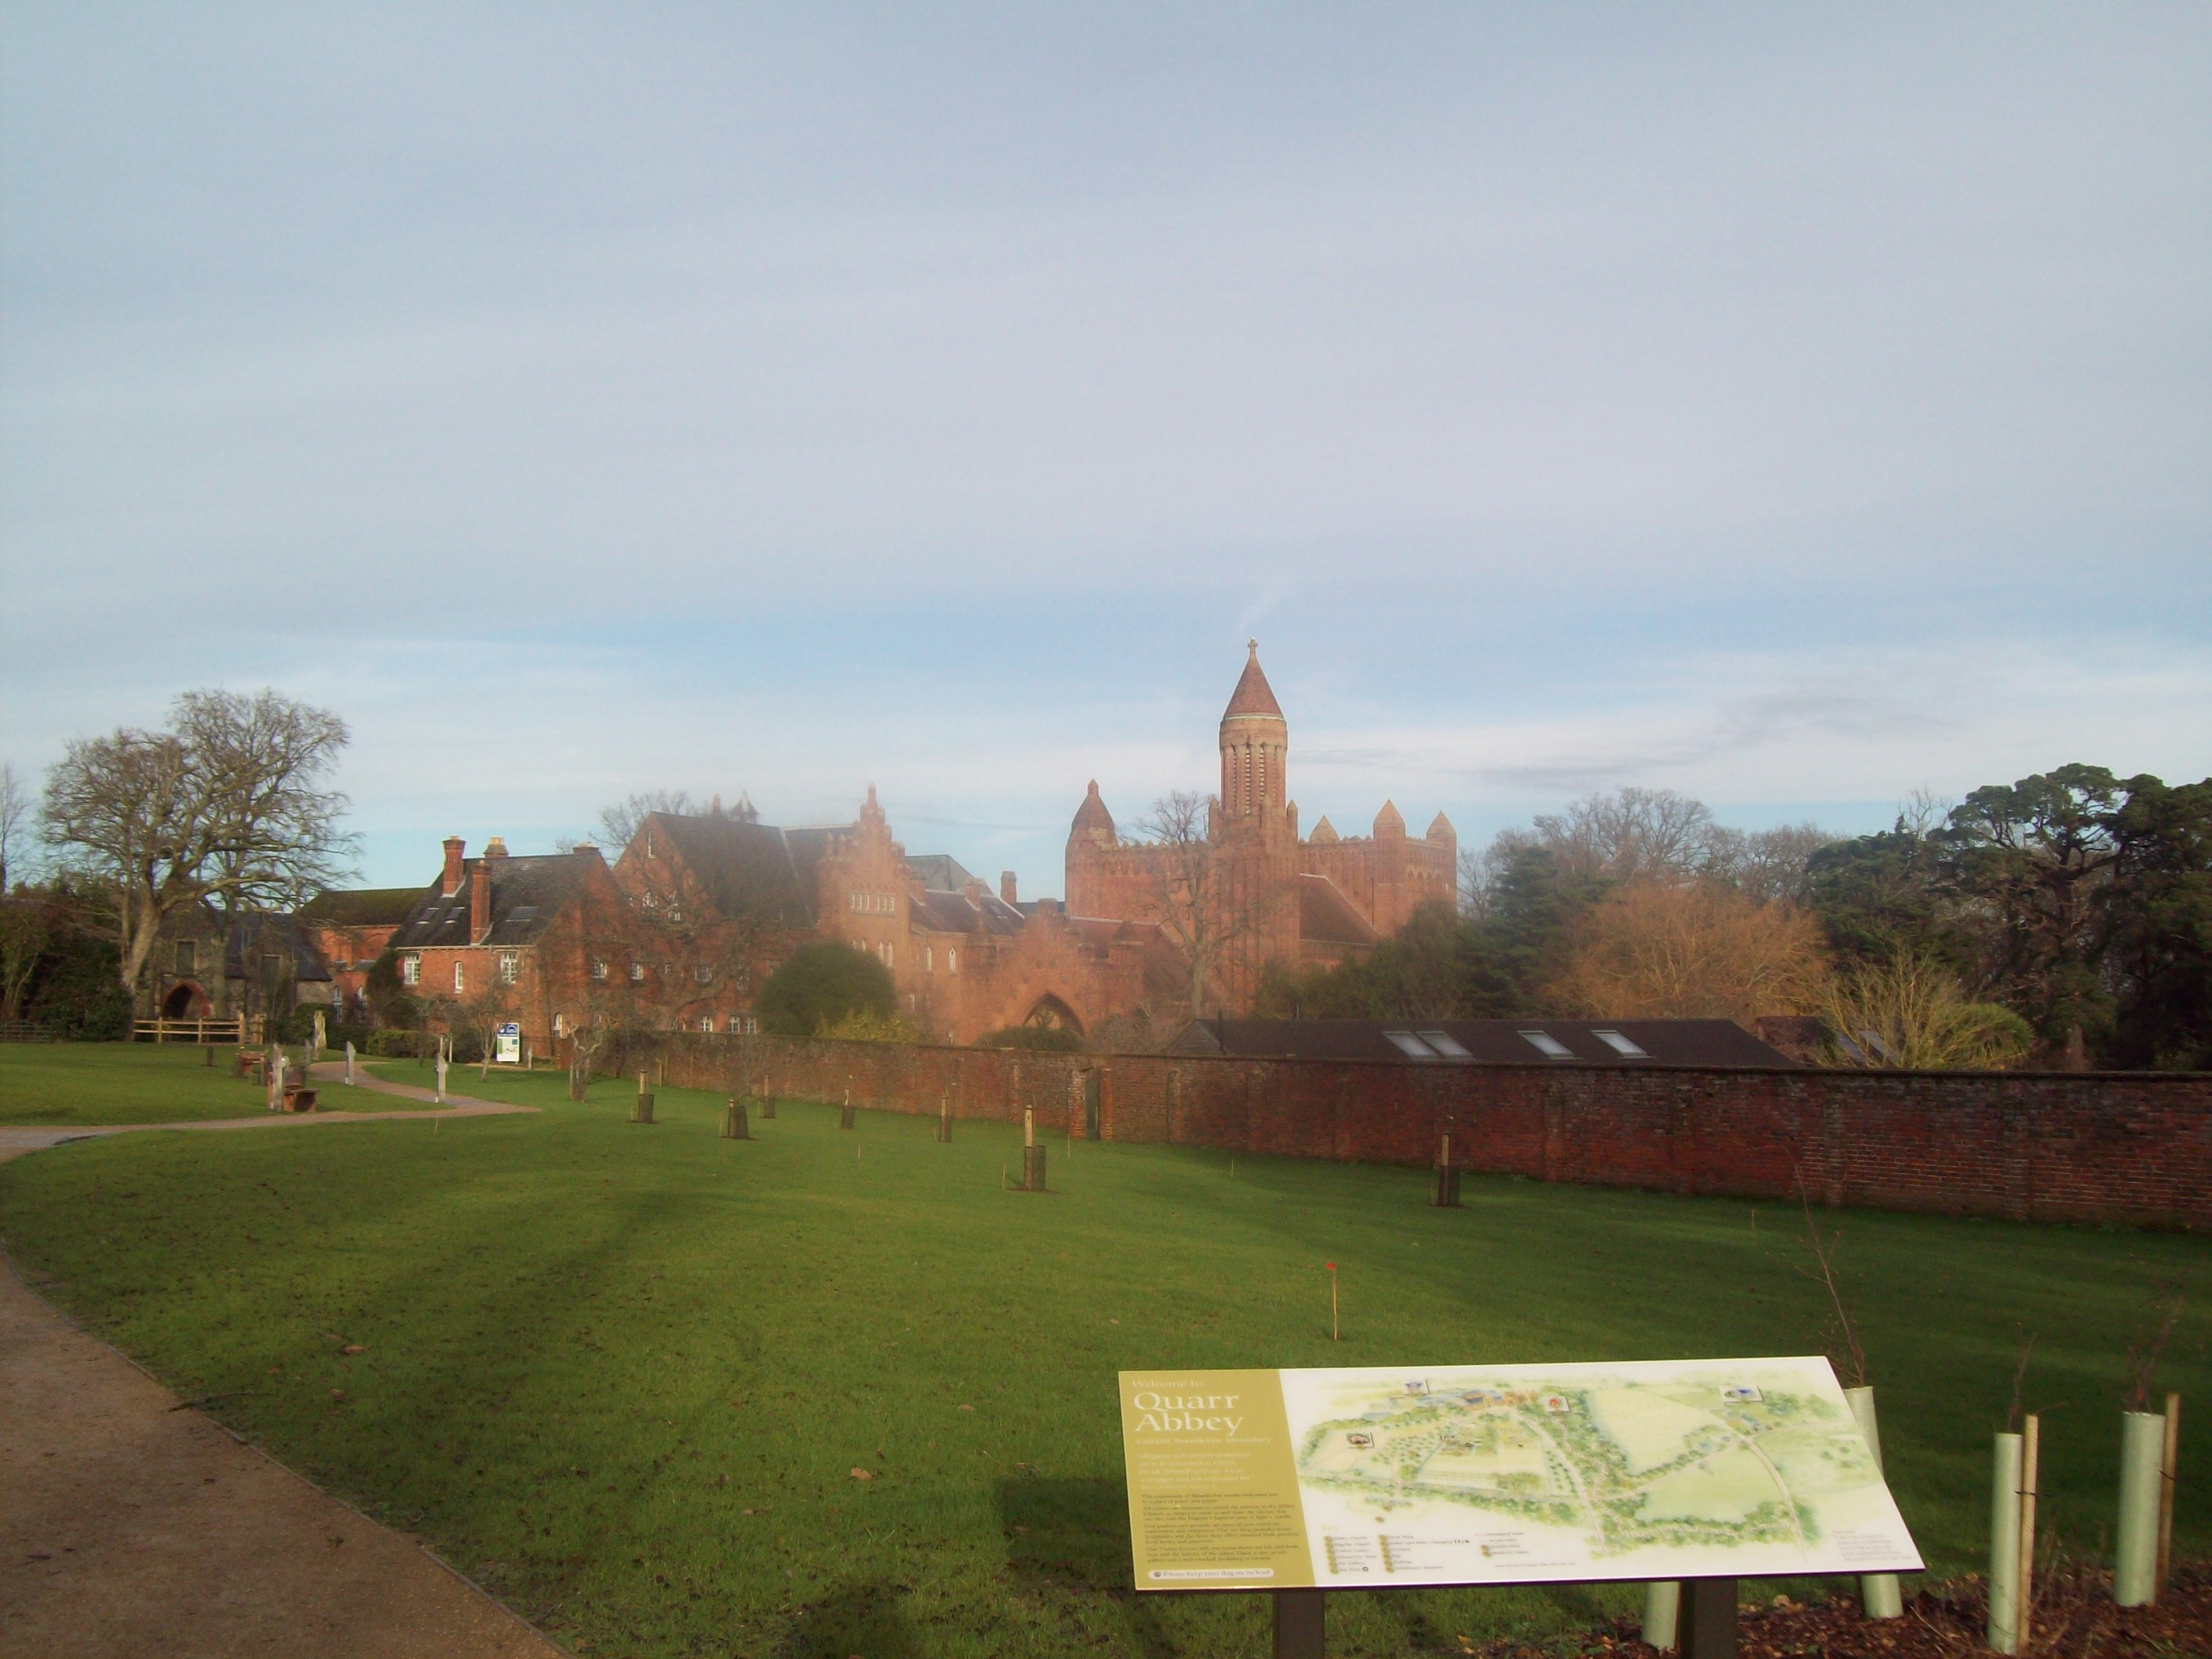 Quarr Abbey : Episode 2.4